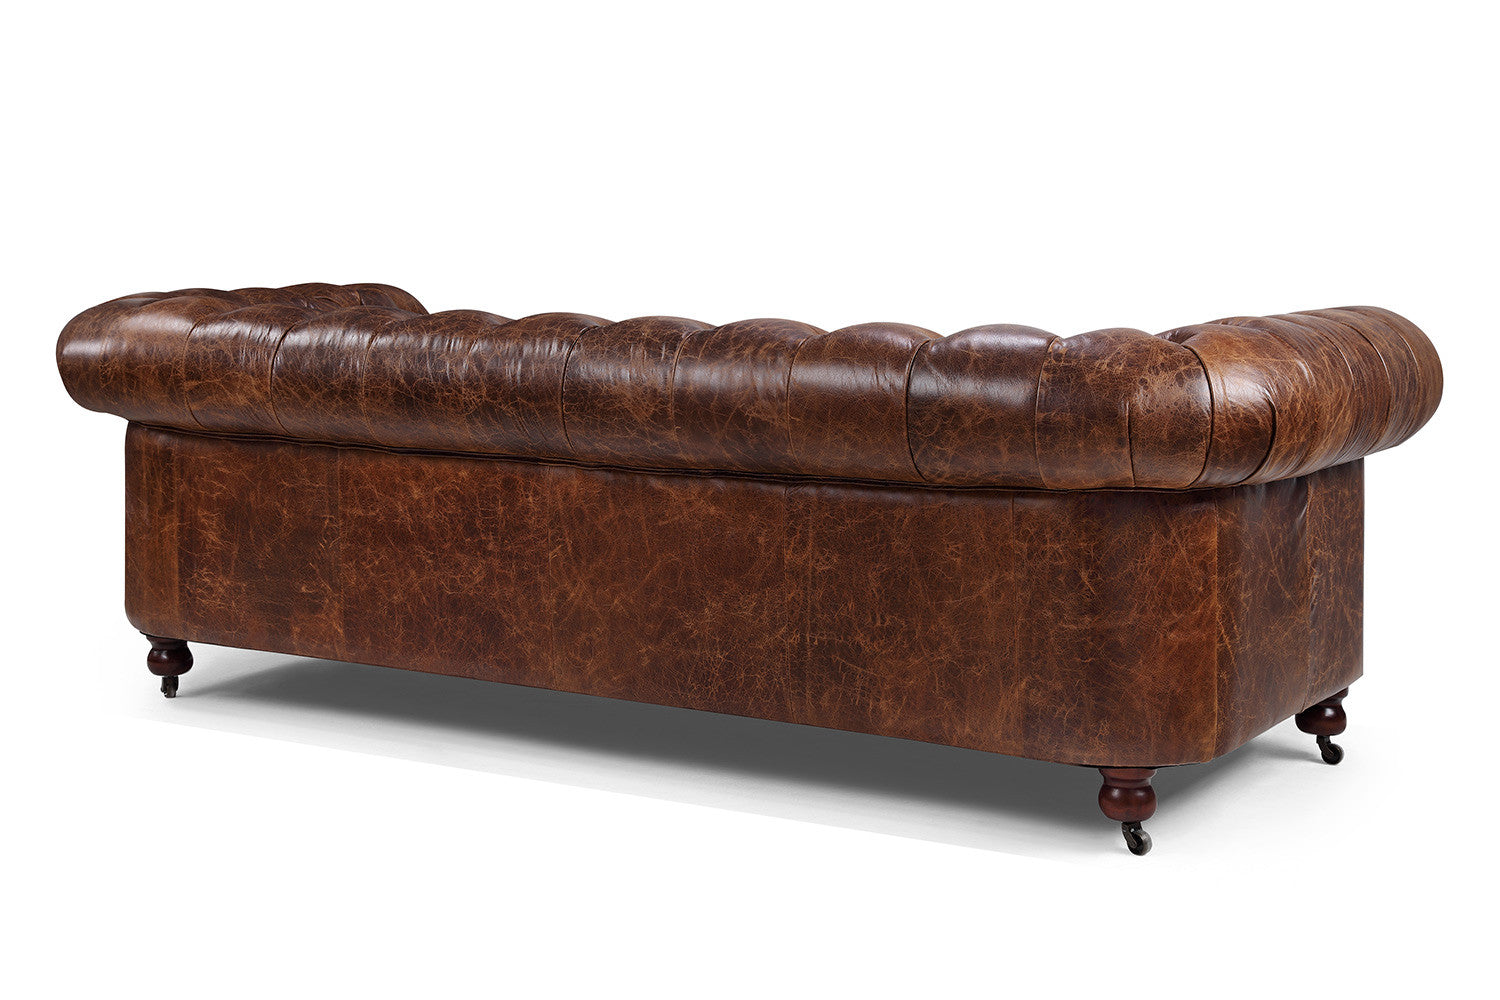 The Kensington Chesterfield Tufted Sofa | Rose and Moore